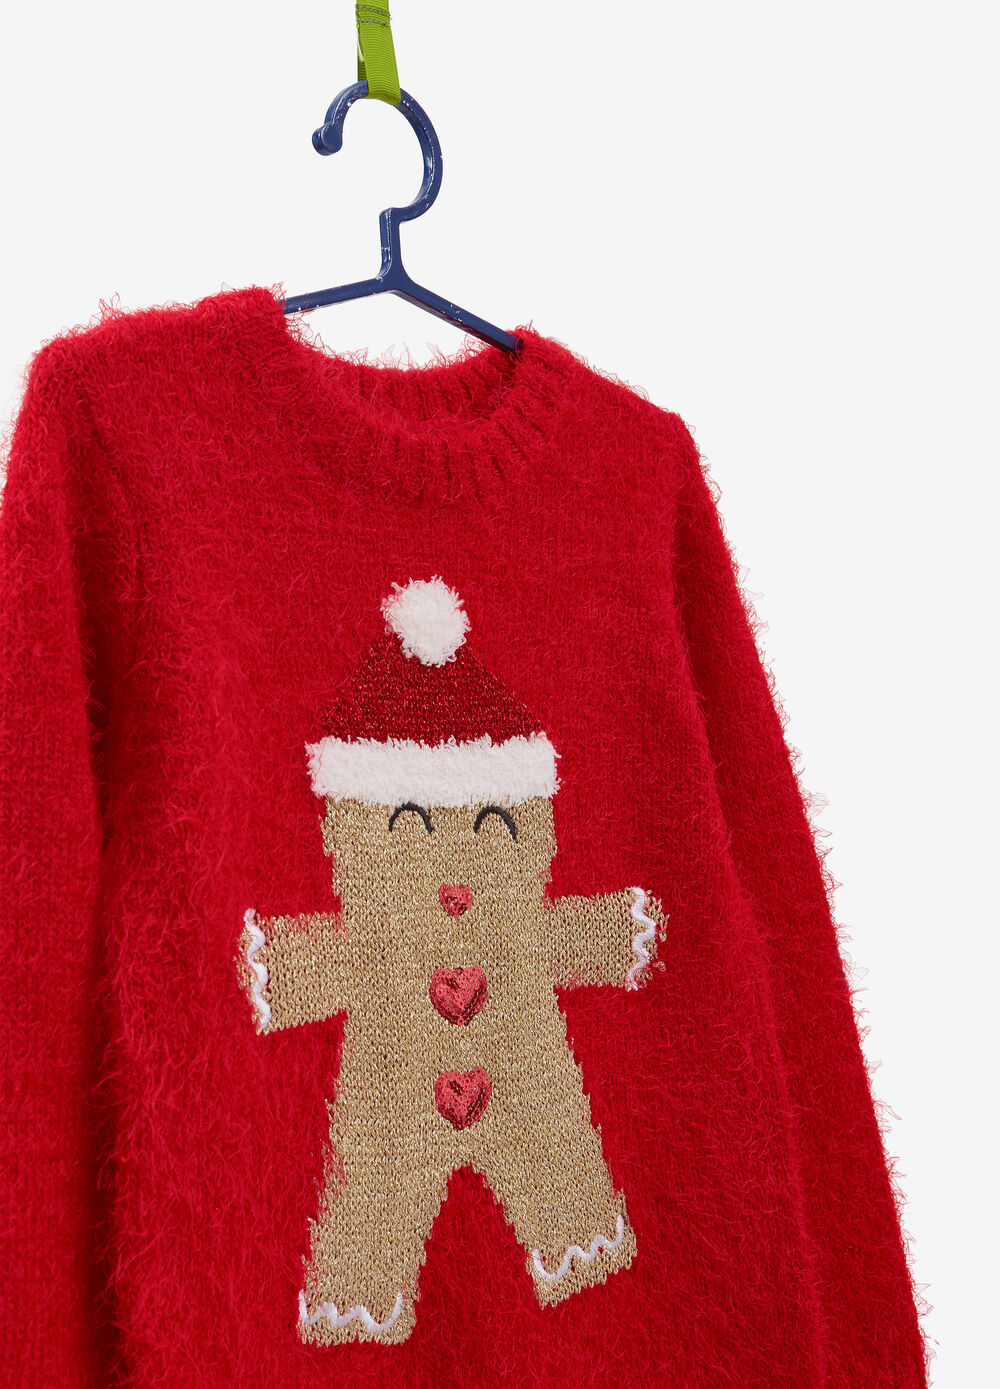 Gingerbread man Christmas sweater